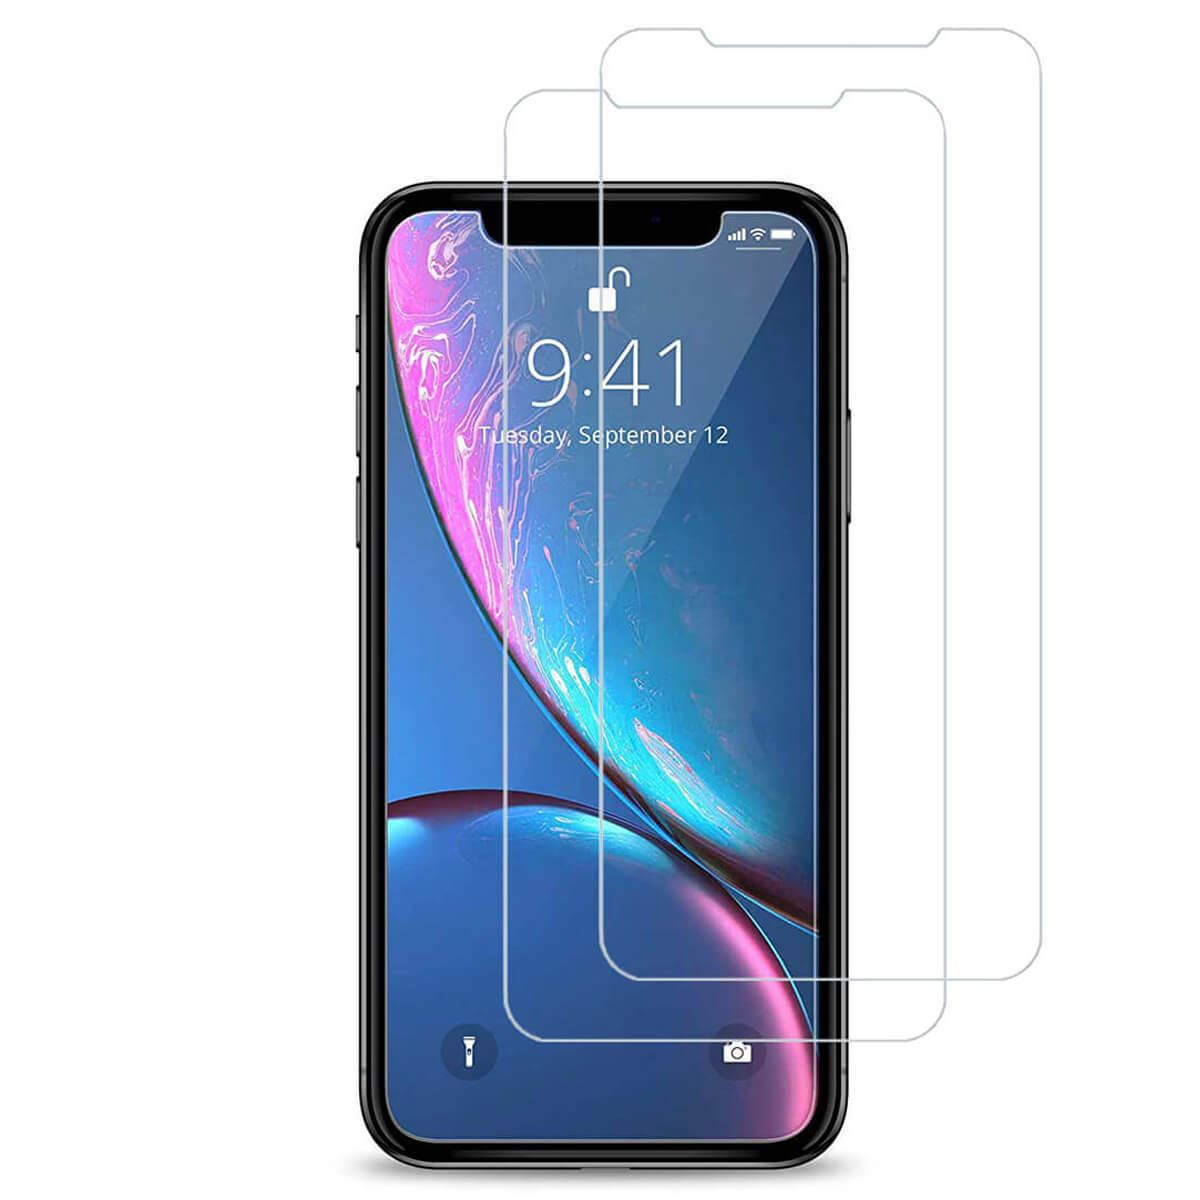 Tempered-Glass-Film-Screen-Protector-For-iPhone-12-Pro-Max-Mini-XR-XS-Max-8-7-6s thumbnail 45